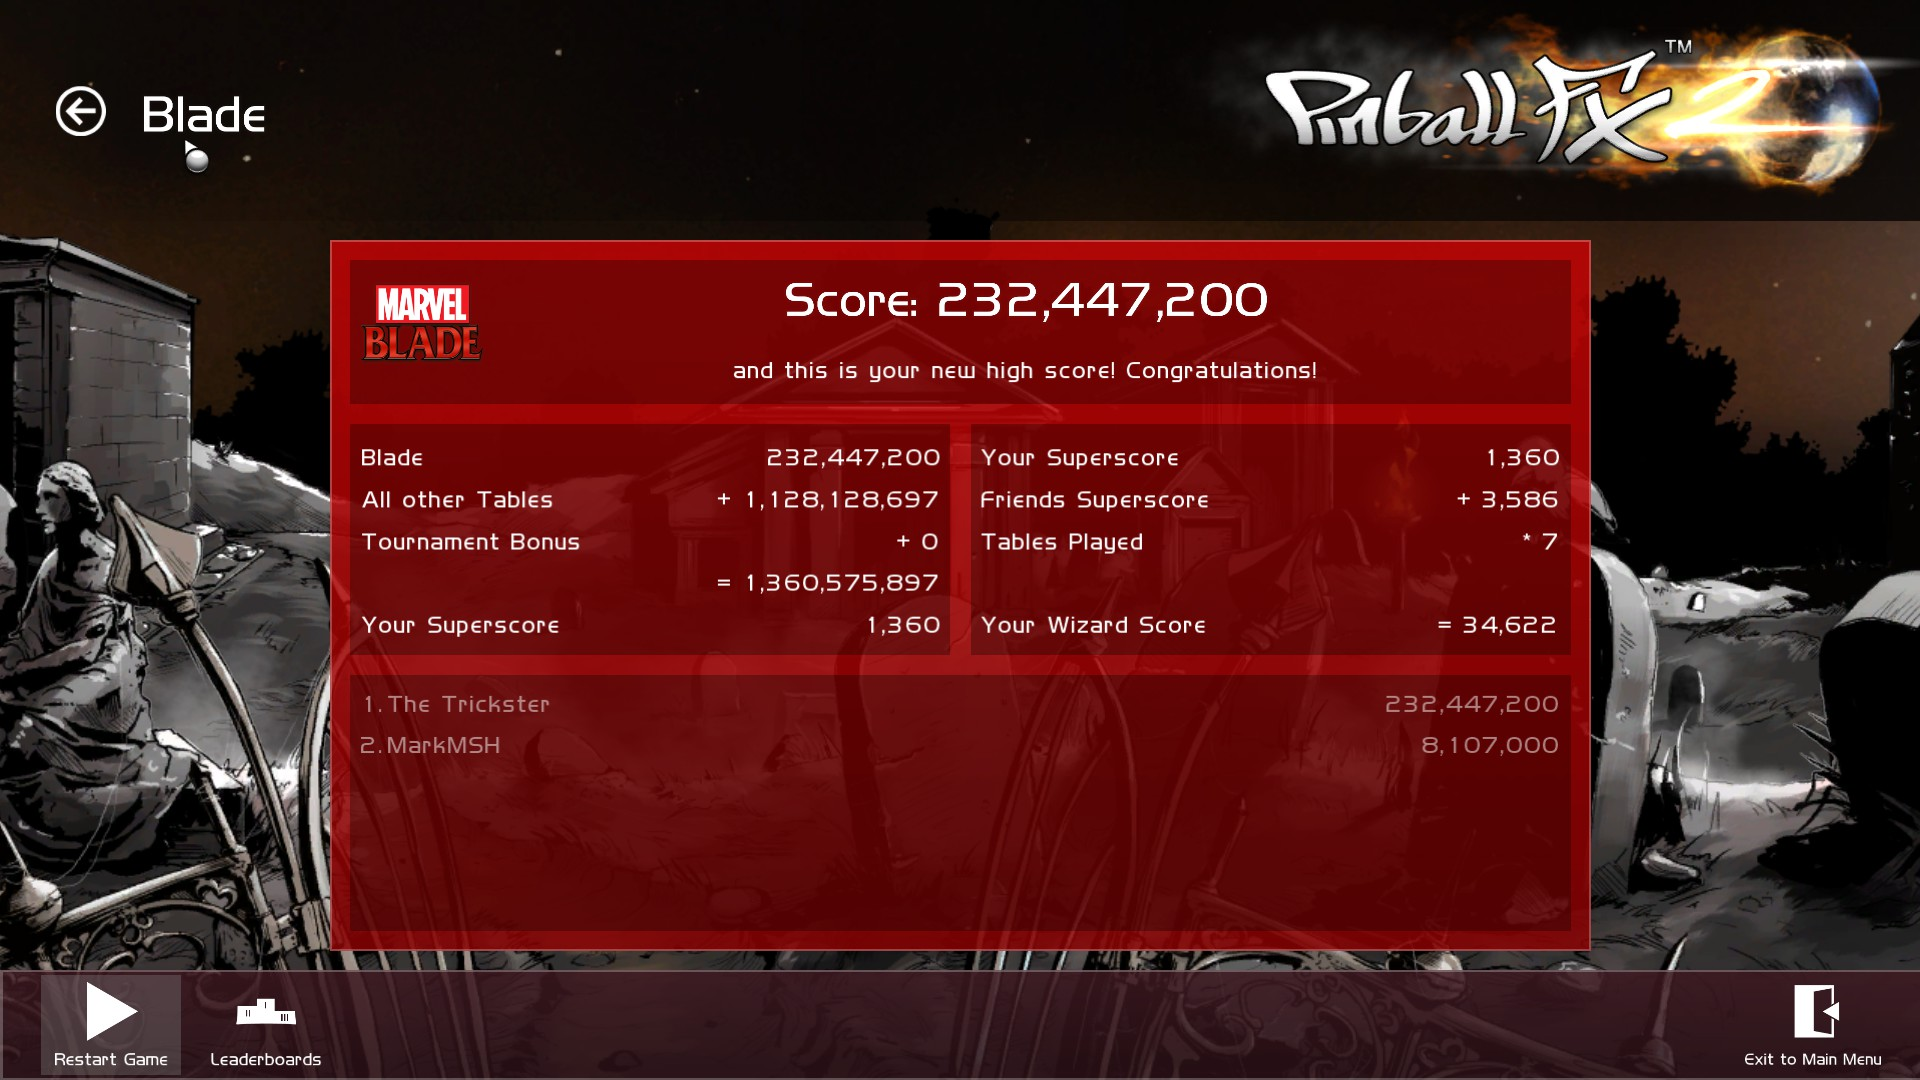 TheTrickster: Pinball FX 2: Blade (PC) 232,447,200 points on 2015-12-09 06:36:28